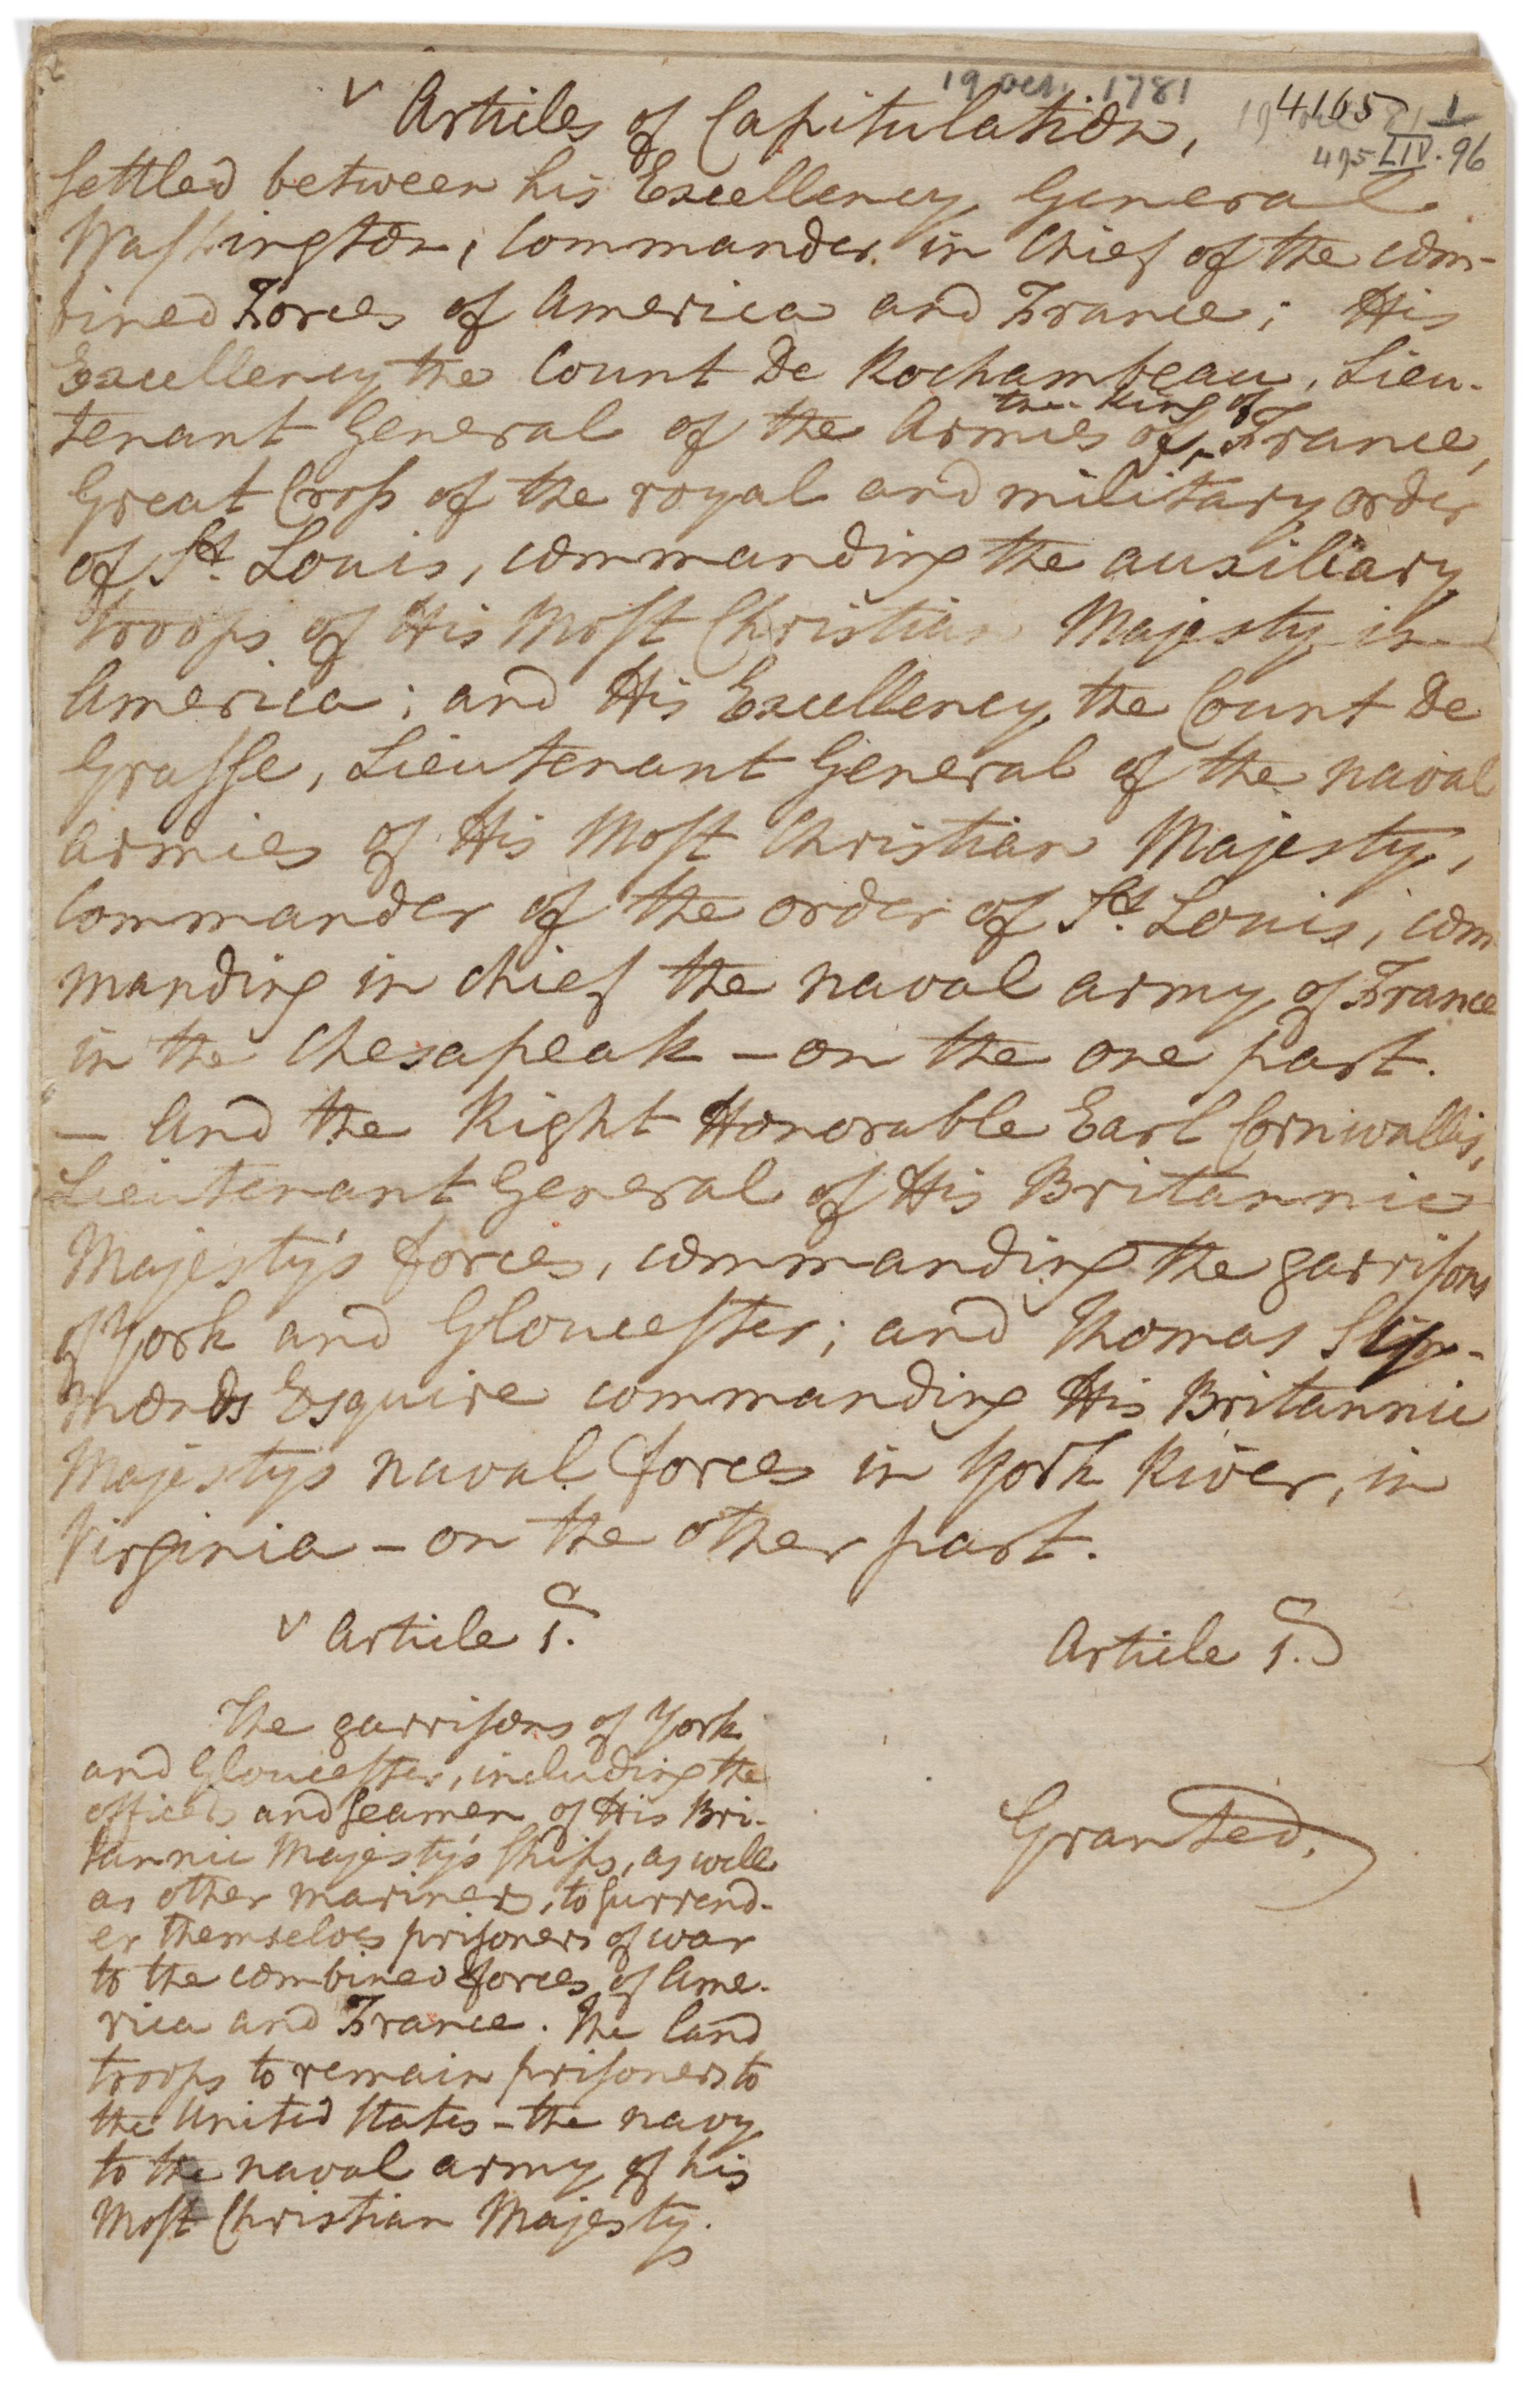 Charles Cornwallis, Articles of capitulation settled at Yorktown, Oct. 19, 1781